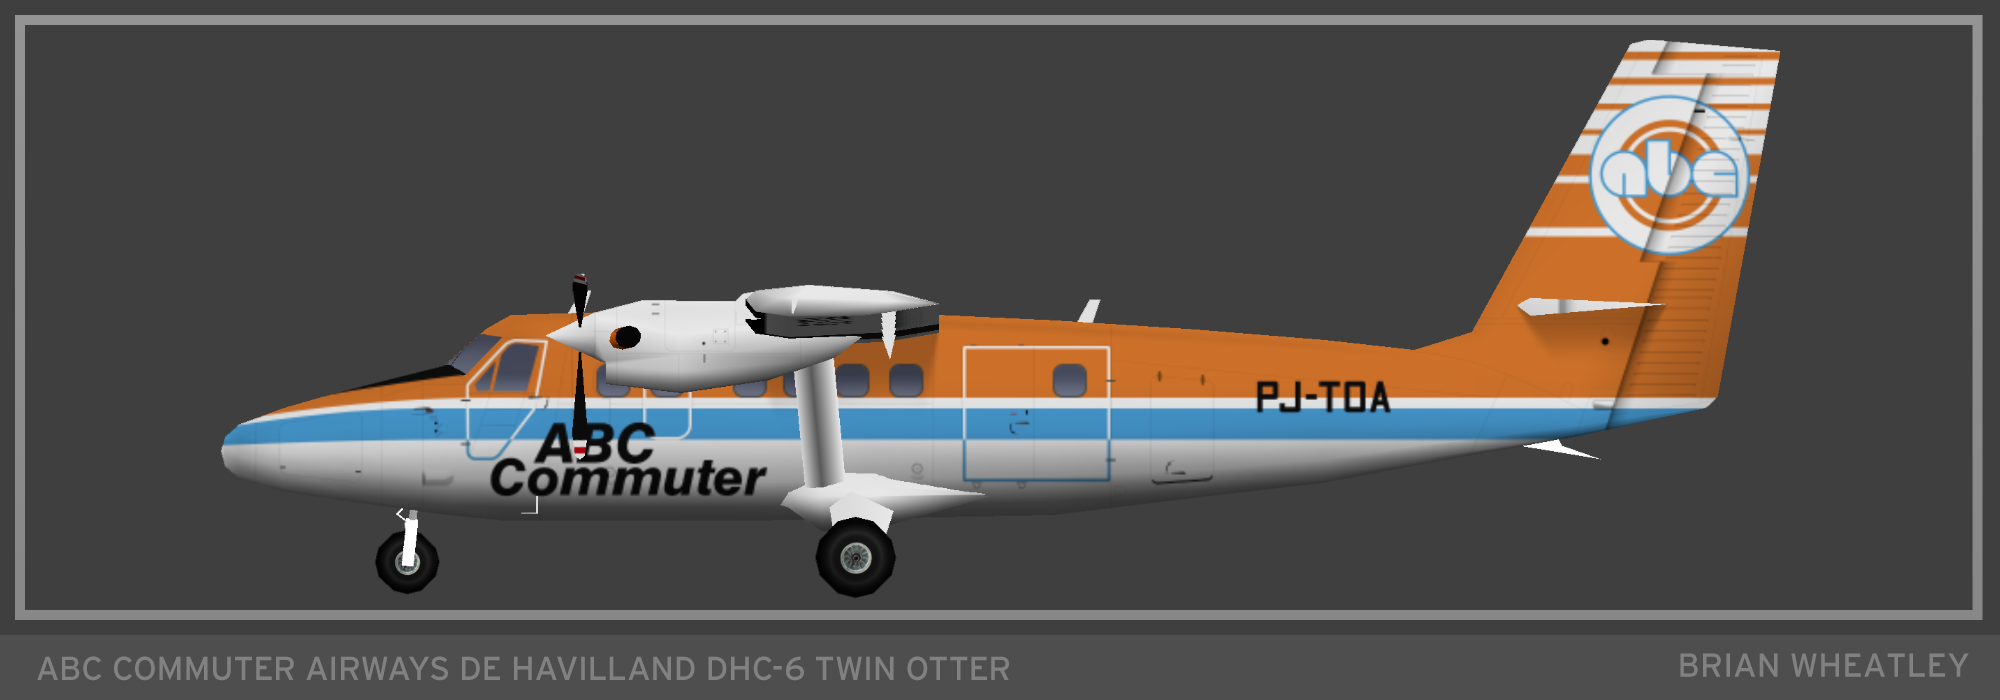 brw_dhc6_abccommuter